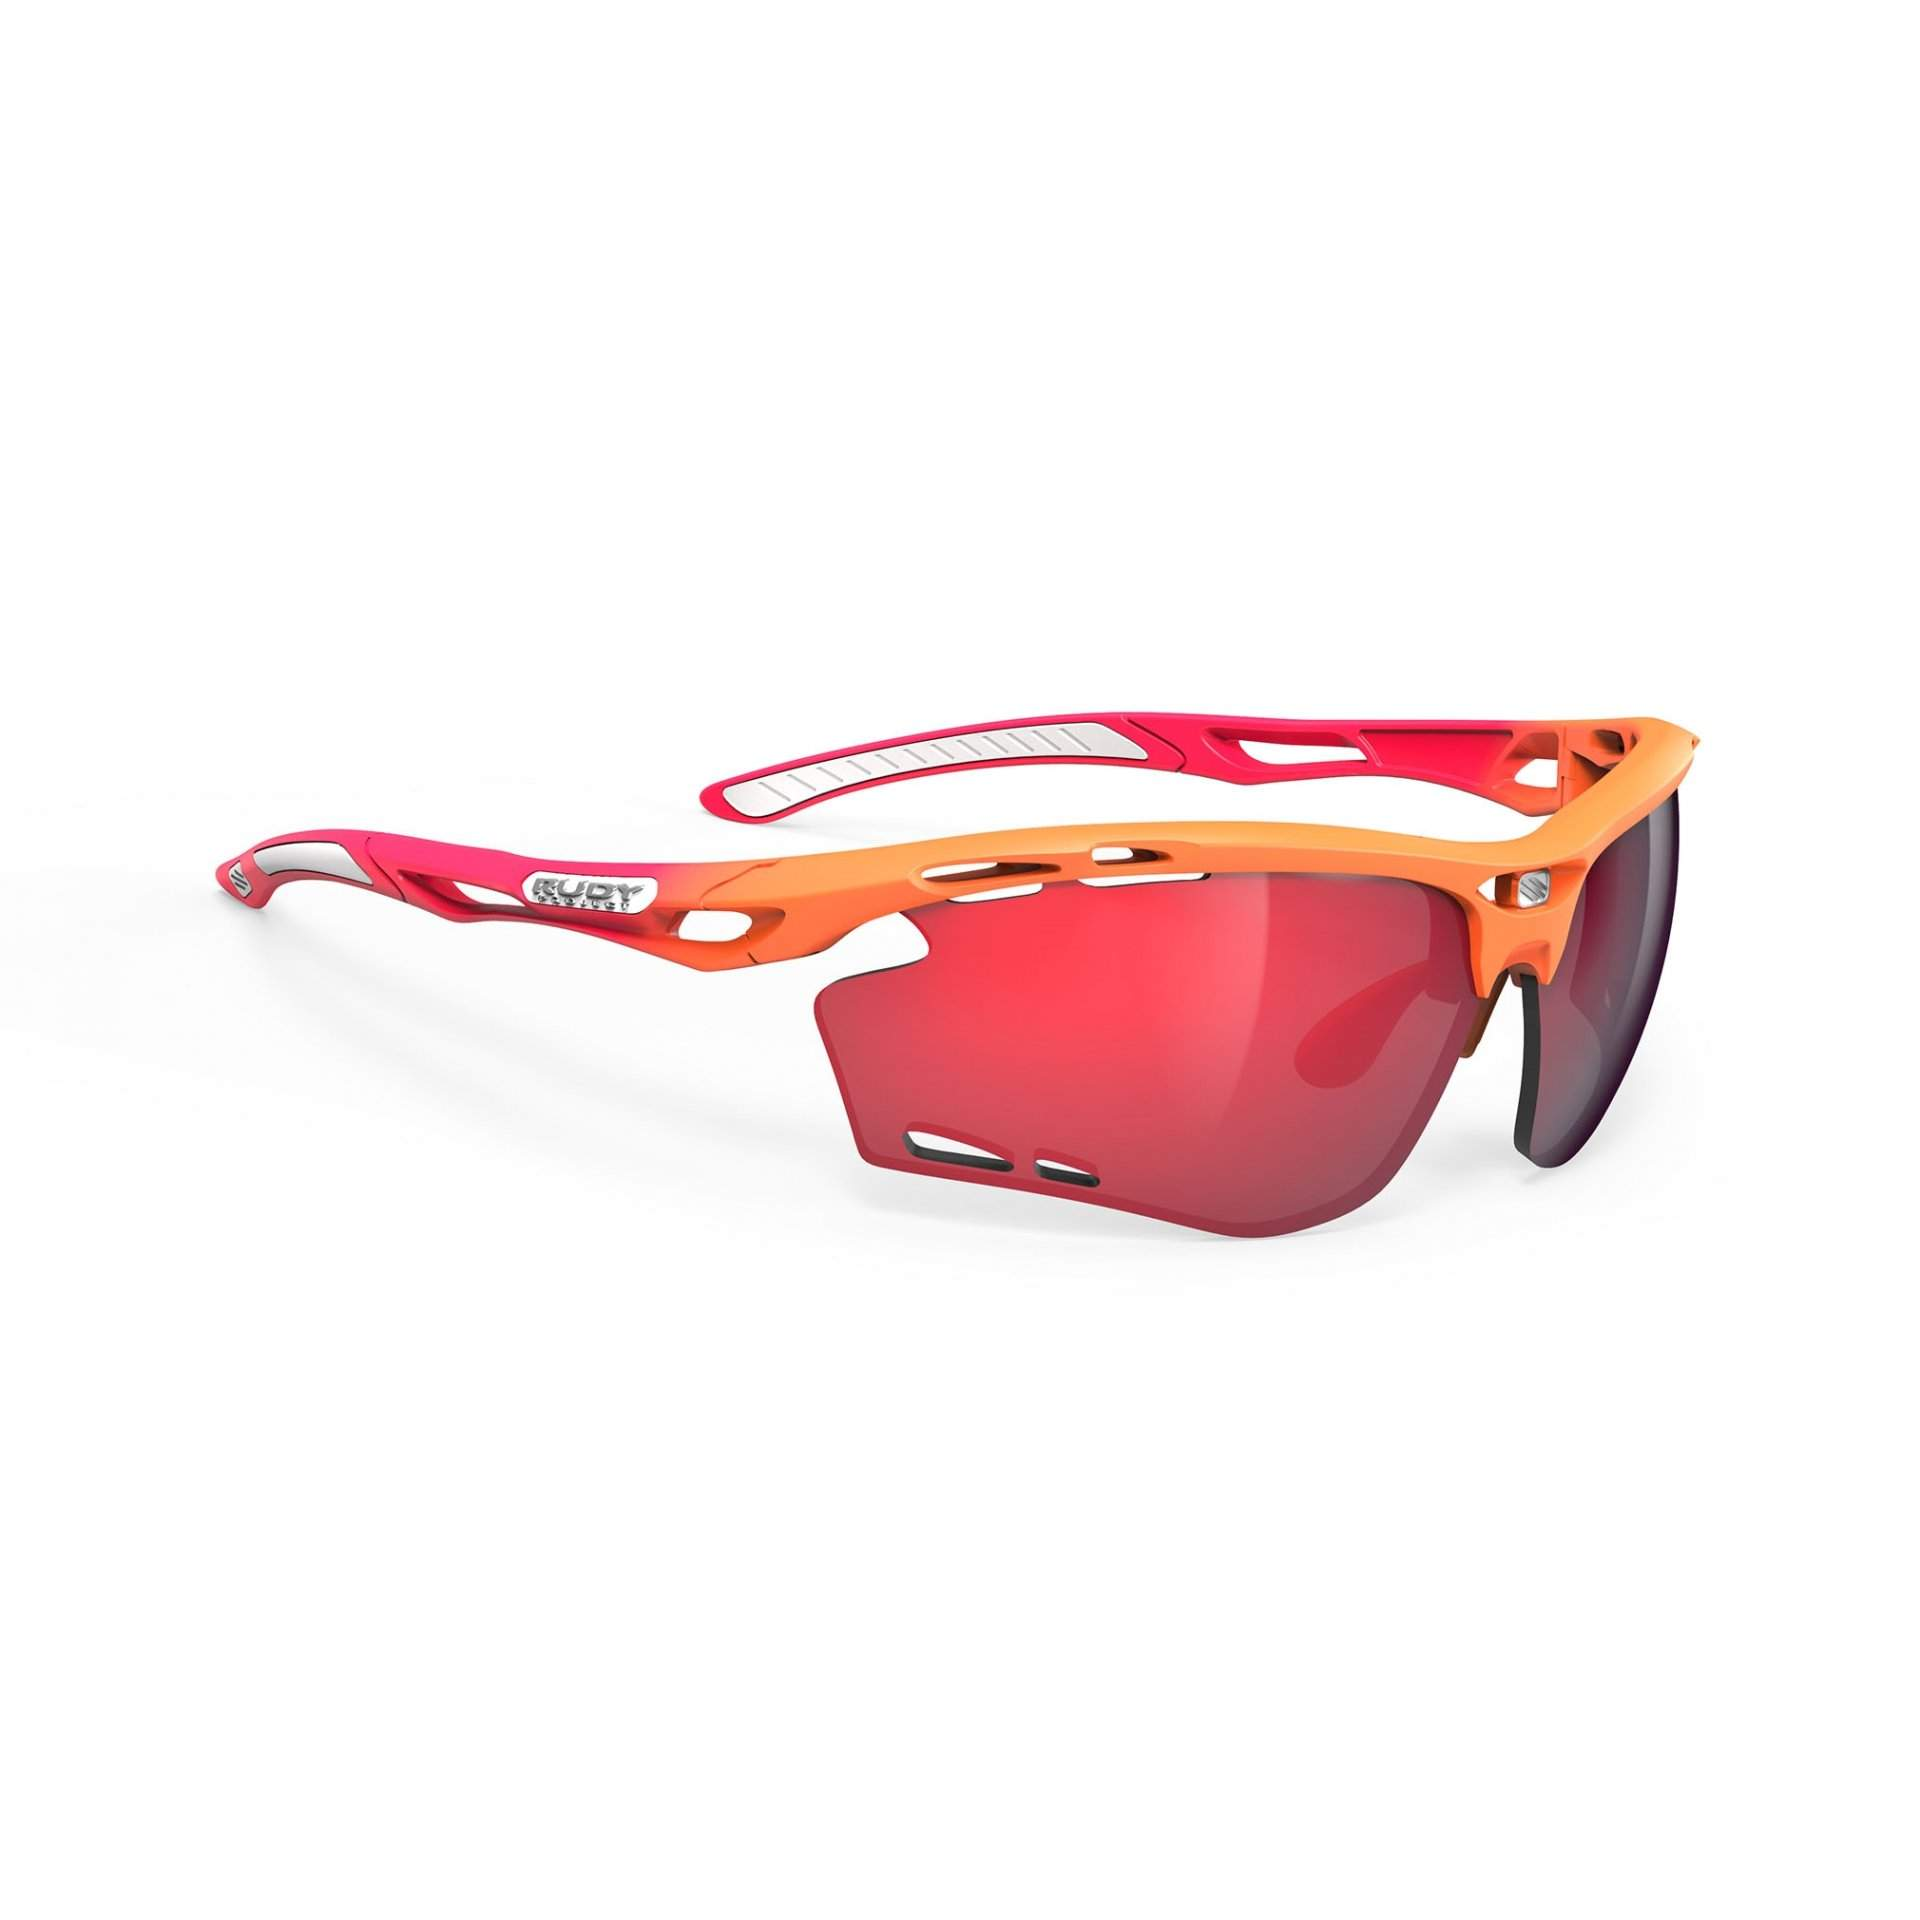 OKULARY RUDY PROJECT PROPULSE MANDARIN FADE CORAL MULTILASER RED 1